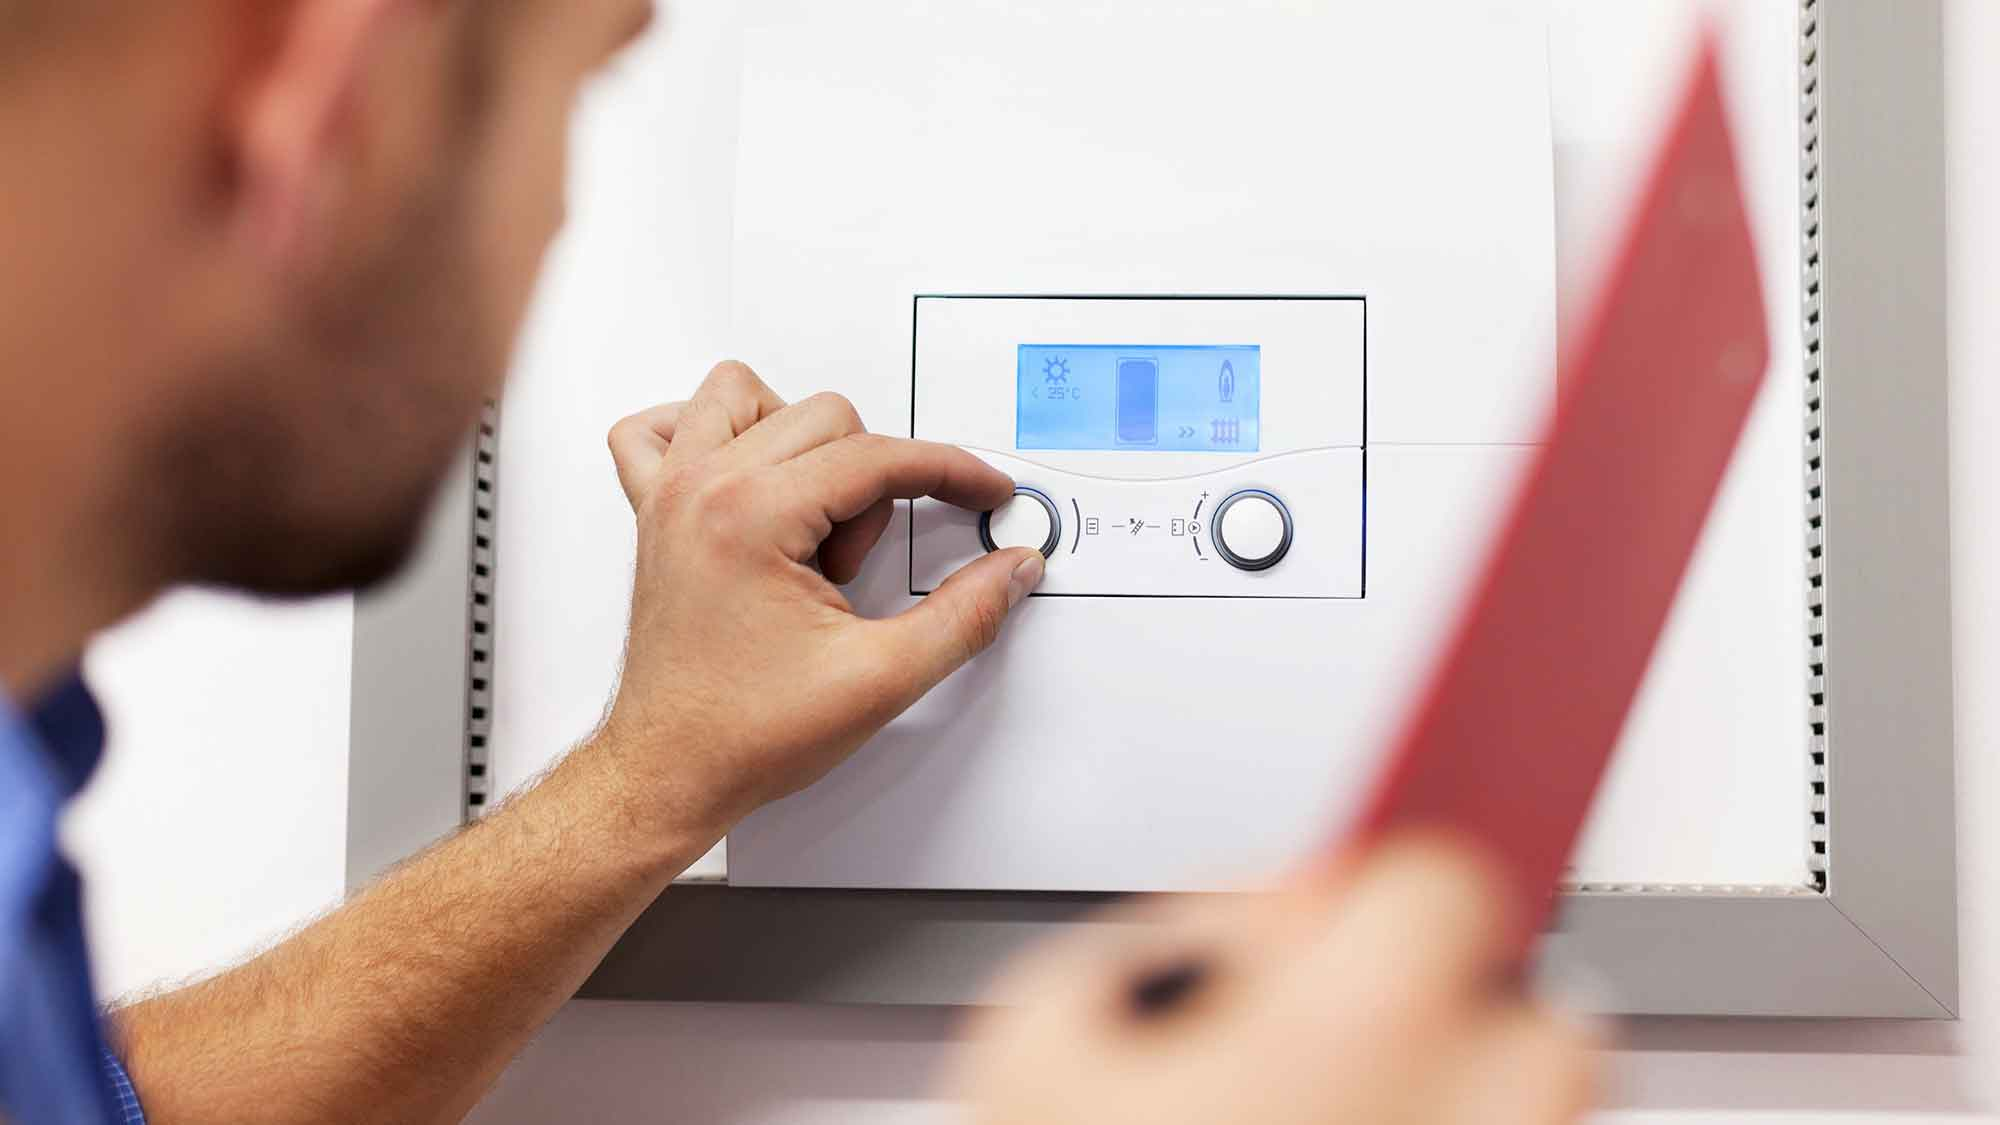 boiler repair essex maintenance leigh on sea check